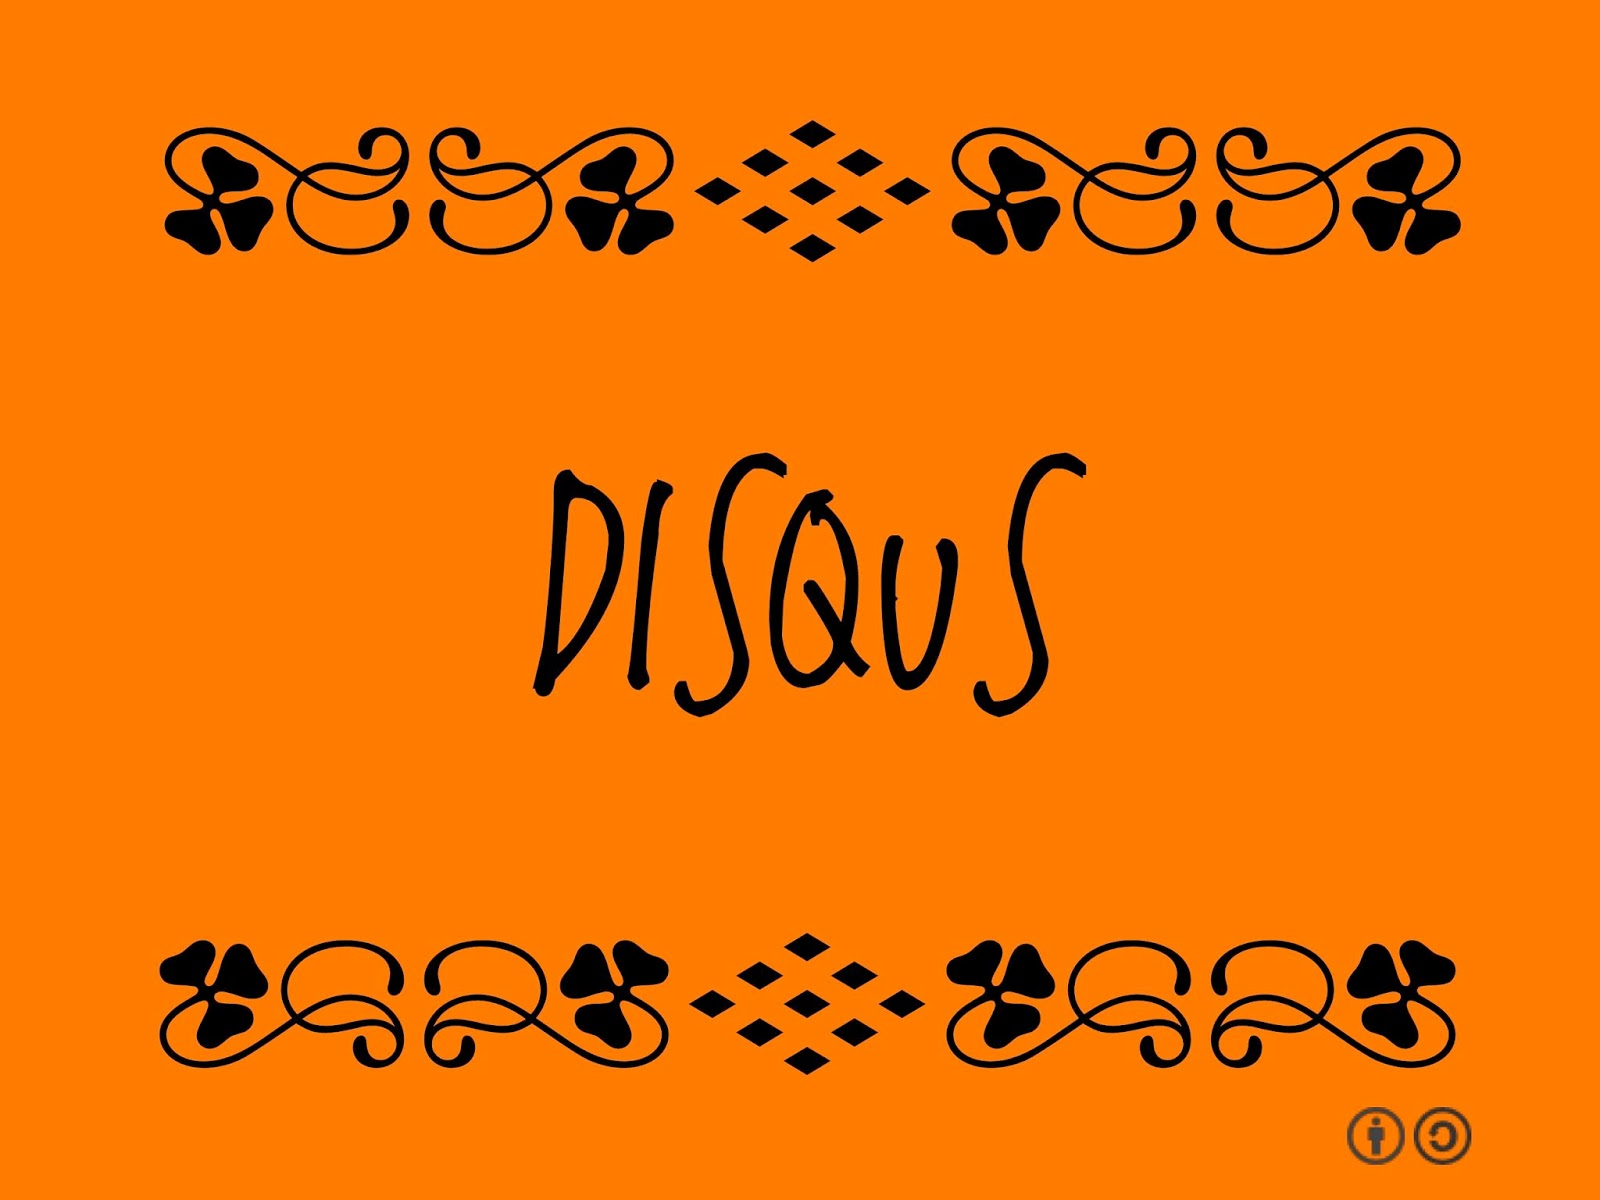 DISQUS Profile Settings Way To Optimize Your Blog